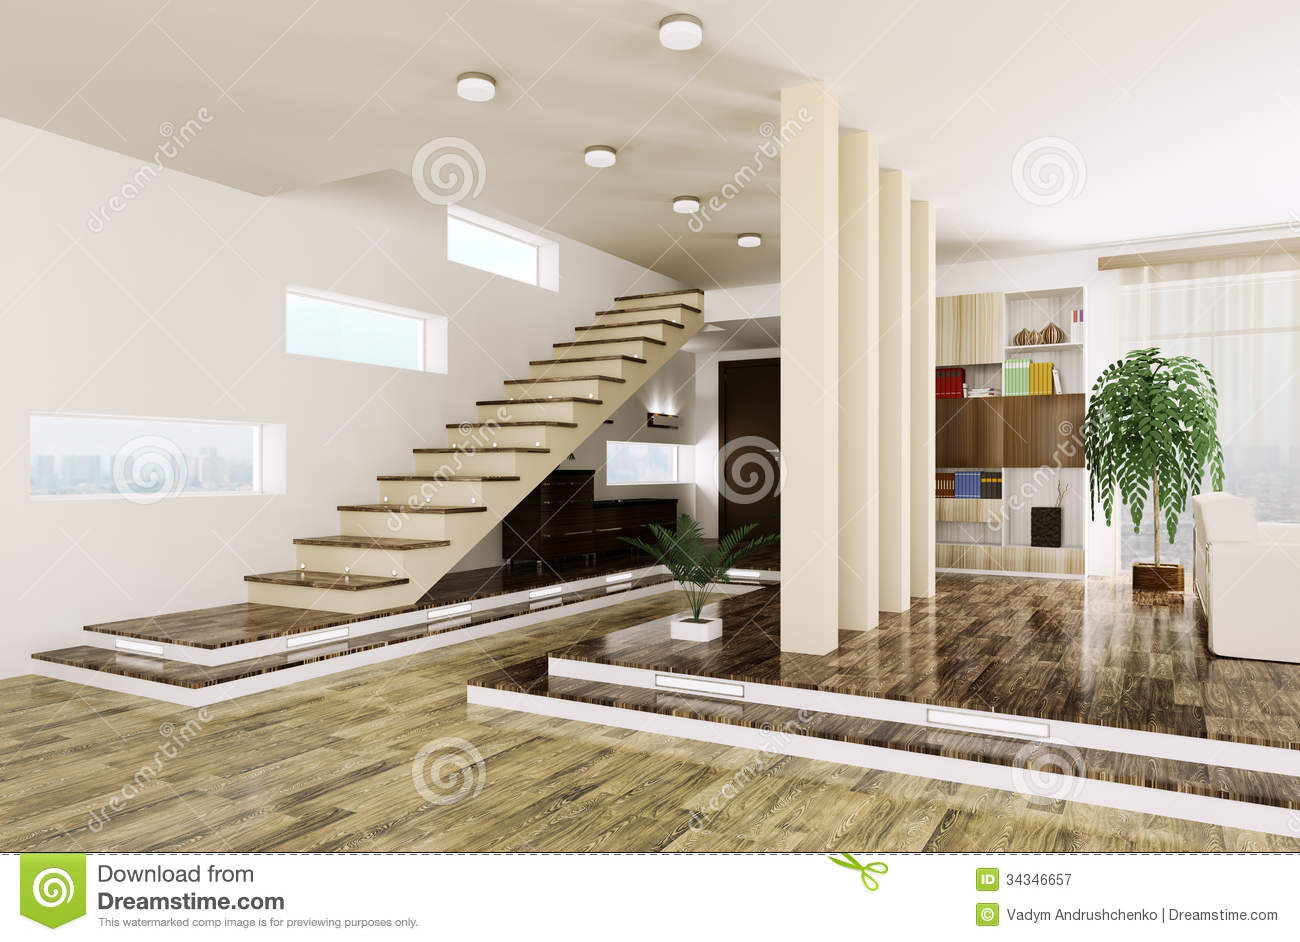 Entrance hall interior 3d render stock illustration for House interior design hall